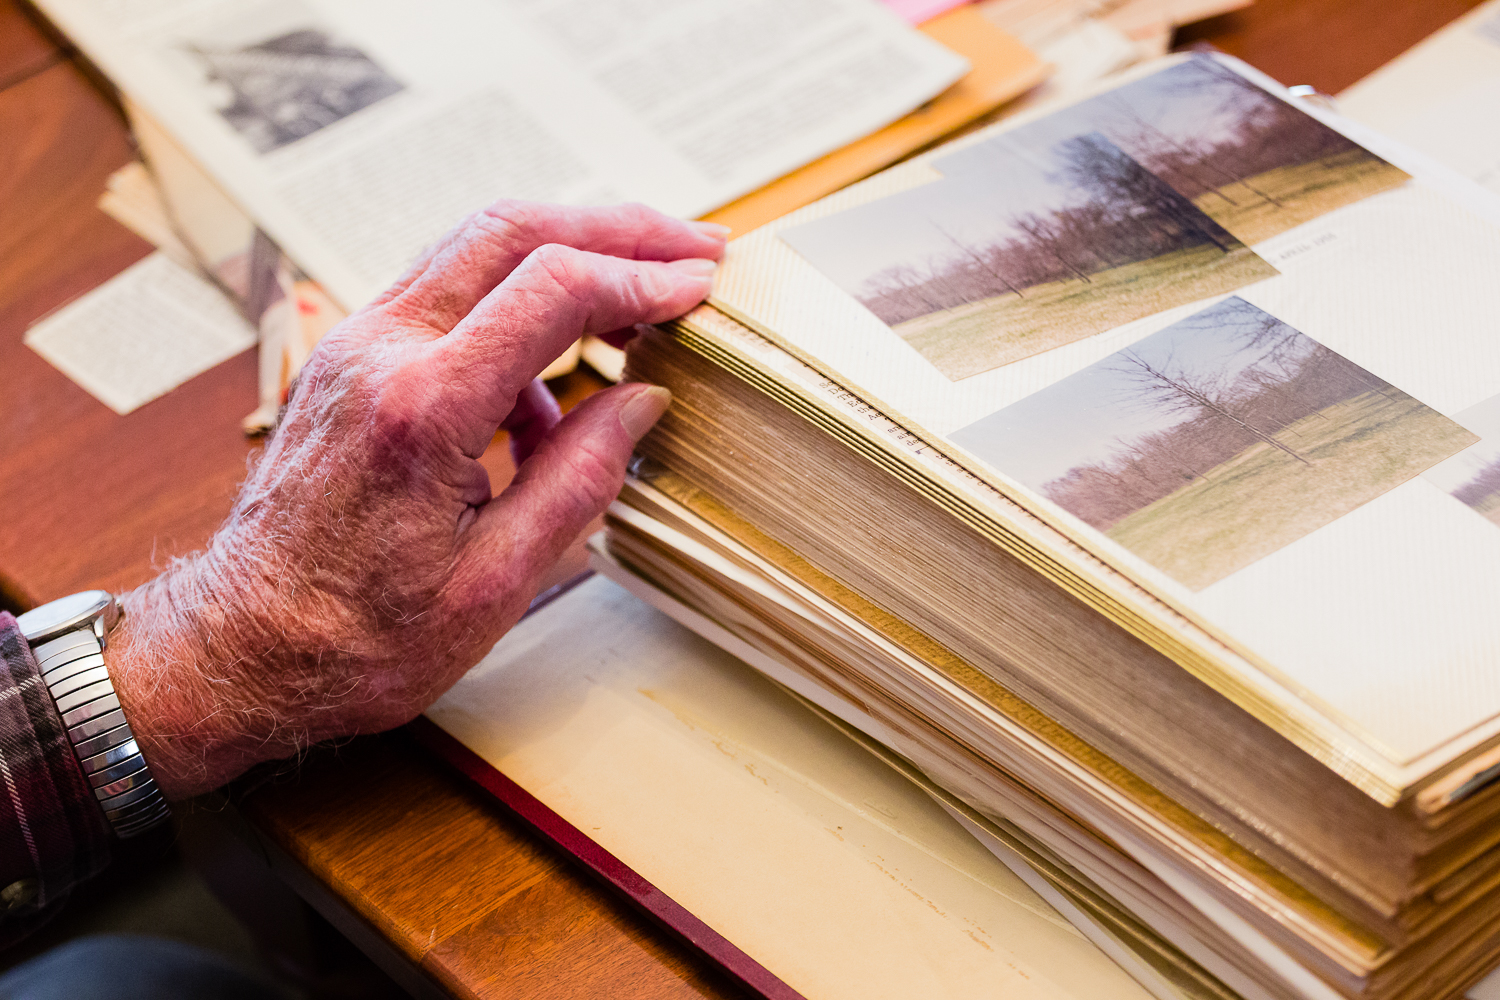 CORY MACNEIL/Citizen photo Donald Swanstone, Sr. flips through a photo album from his time as site manager for the camp. He served in that role for nearly two decades, part of a family lineage that helped upkeep the camp during its storied history.